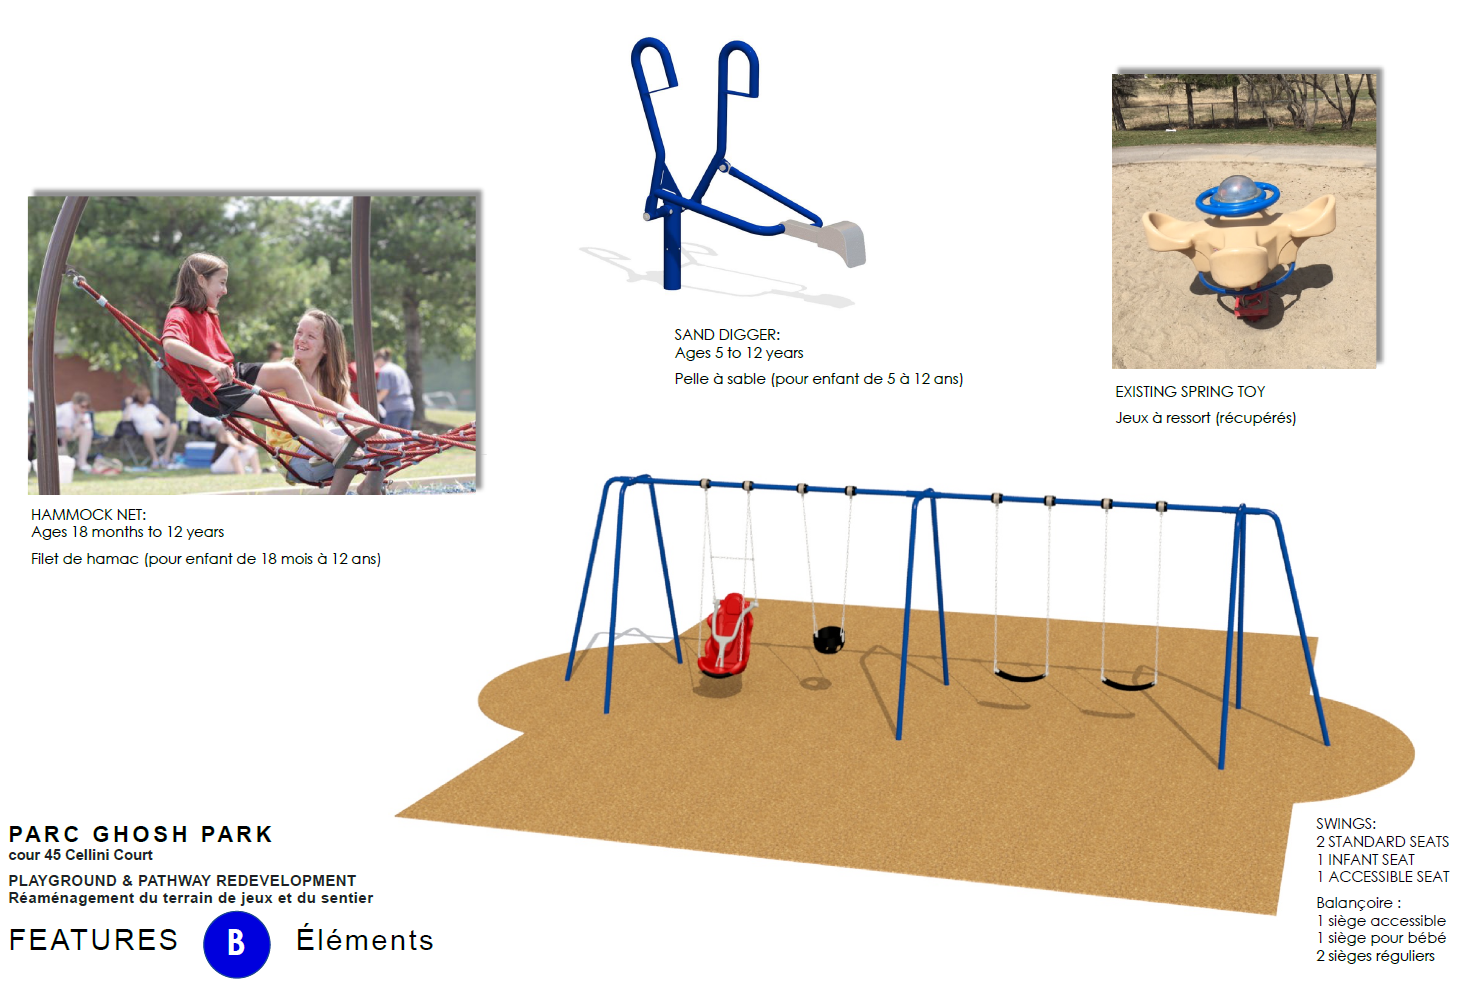 Conceptual image showing the playground redevelopment in Ghosh Park, indicating the following: a child on the Hammock Net; Sand Digger for the Sand Play area; existing Spring Toy; and the Swing Set area, including two standard seats, one infant seat, and one accessible seat.